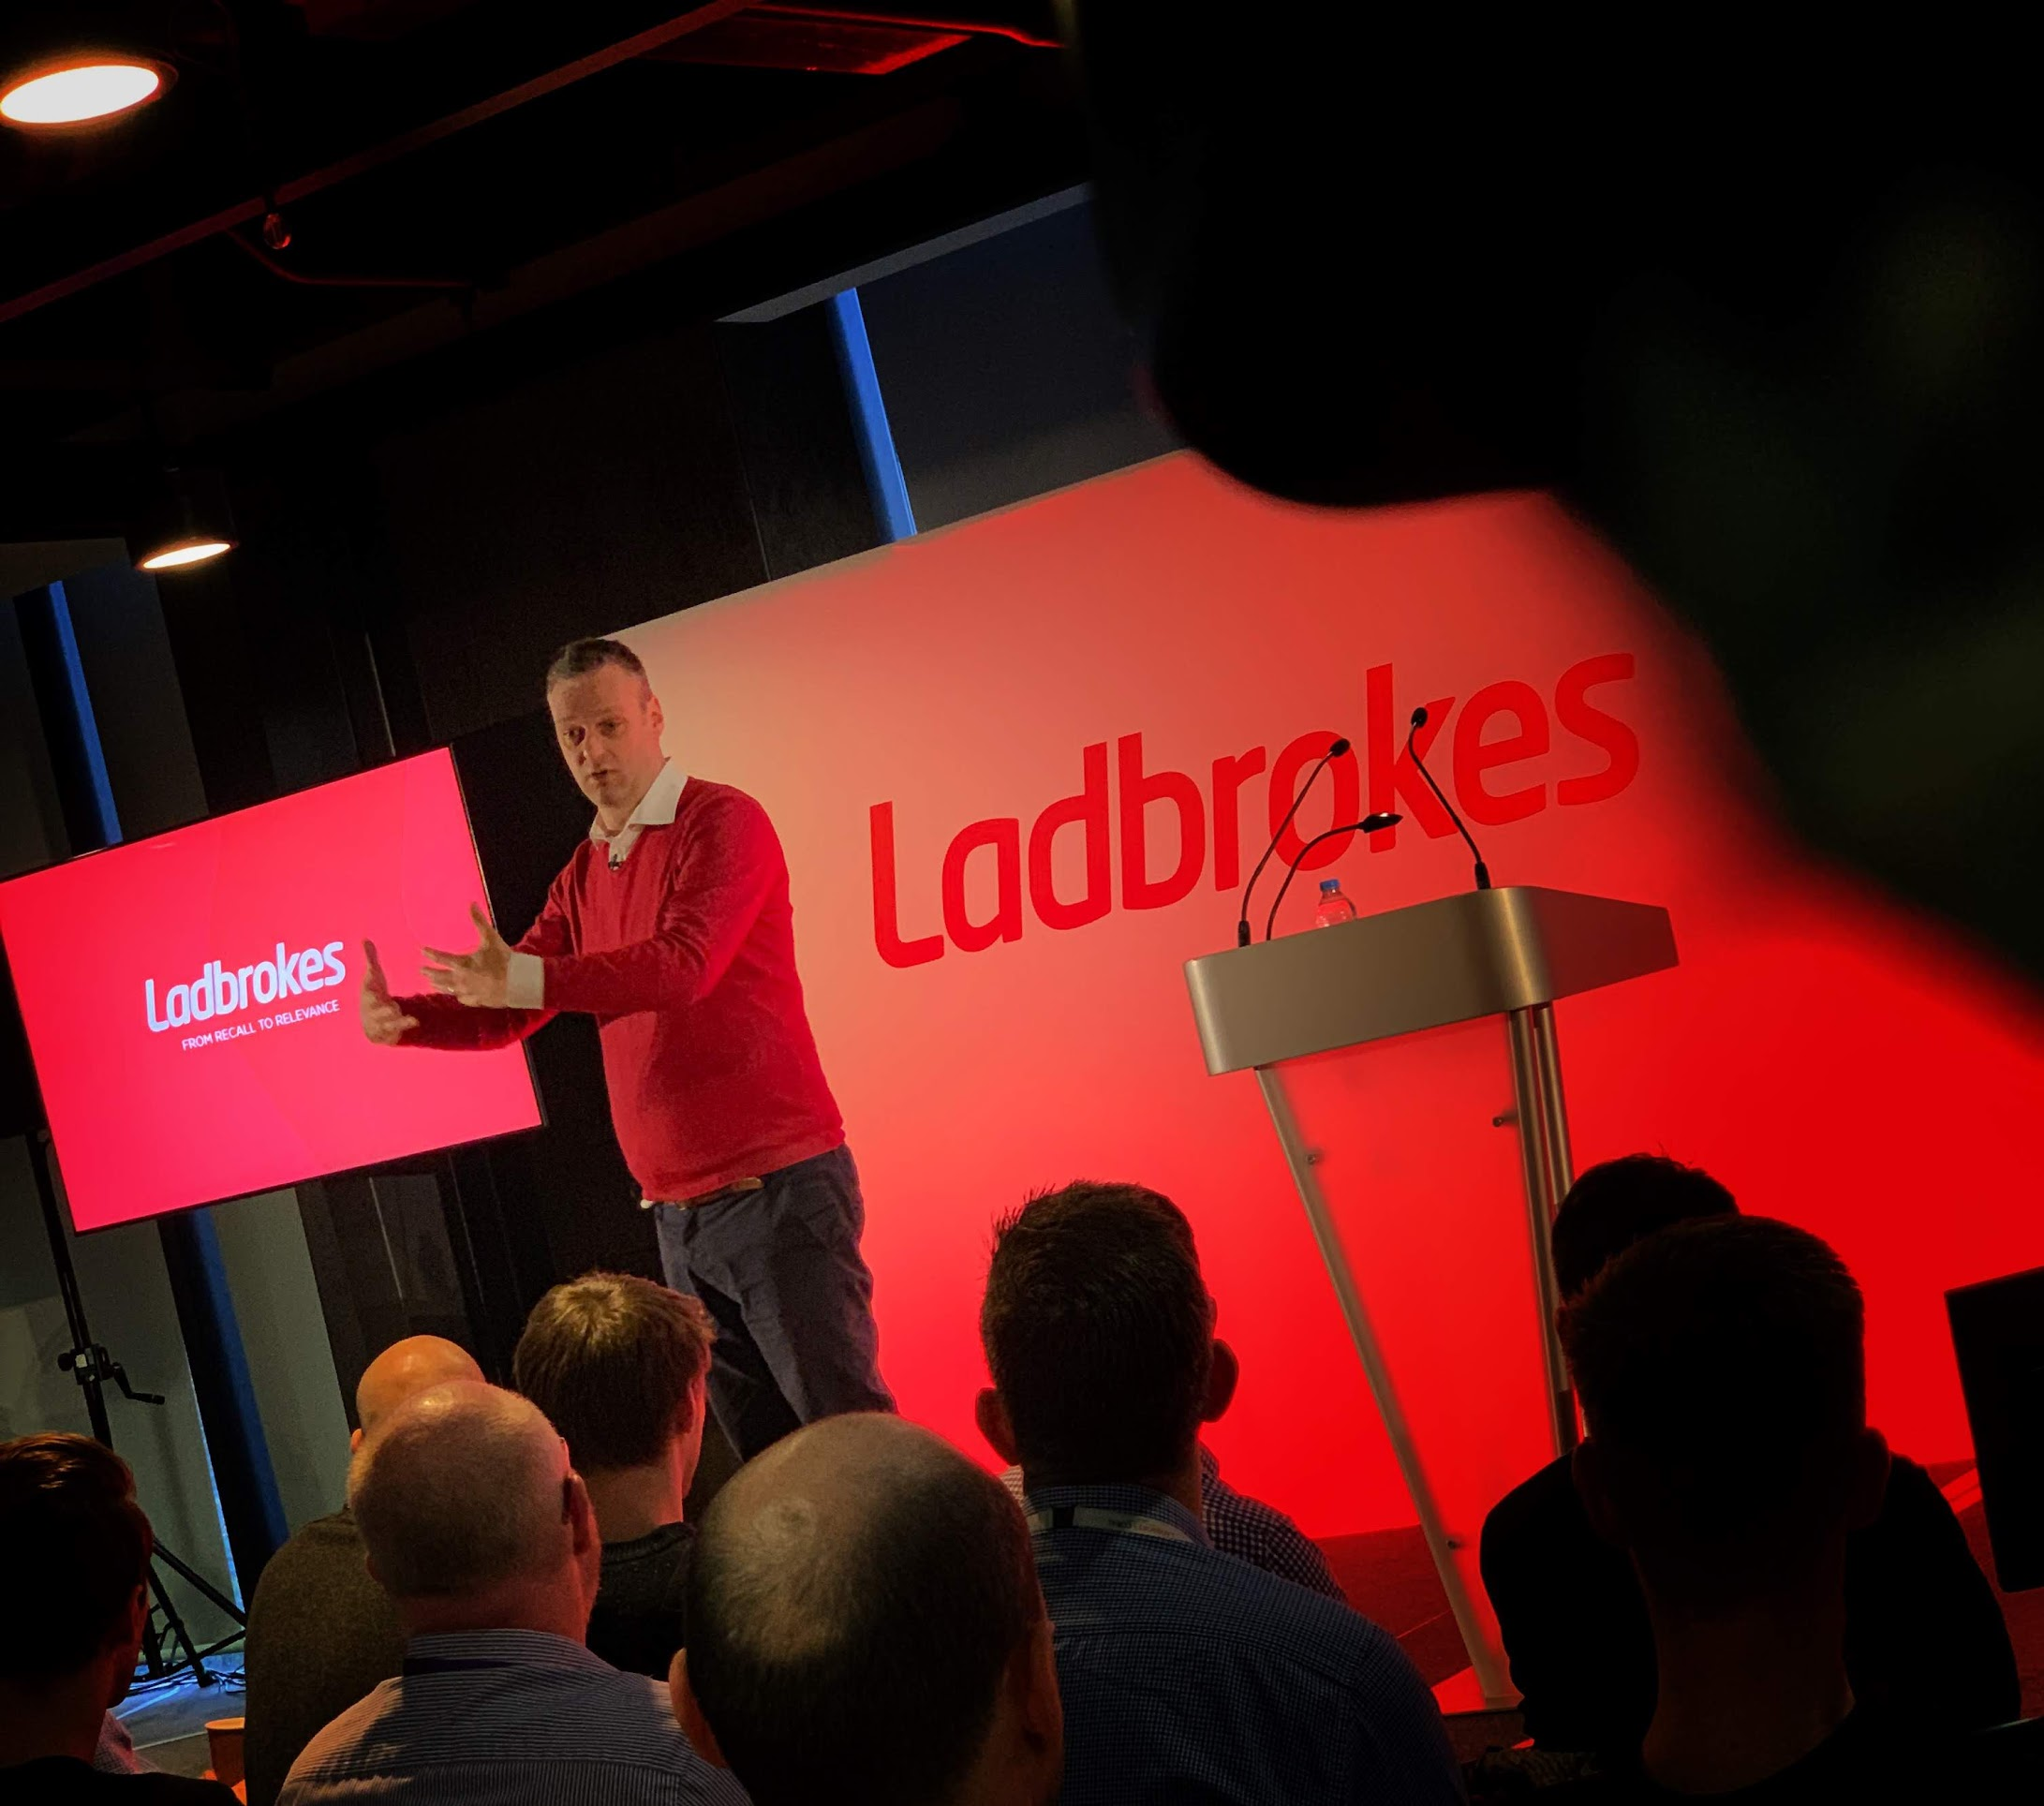 https://www.themediacompany.co.uk/project/ladbrokes/